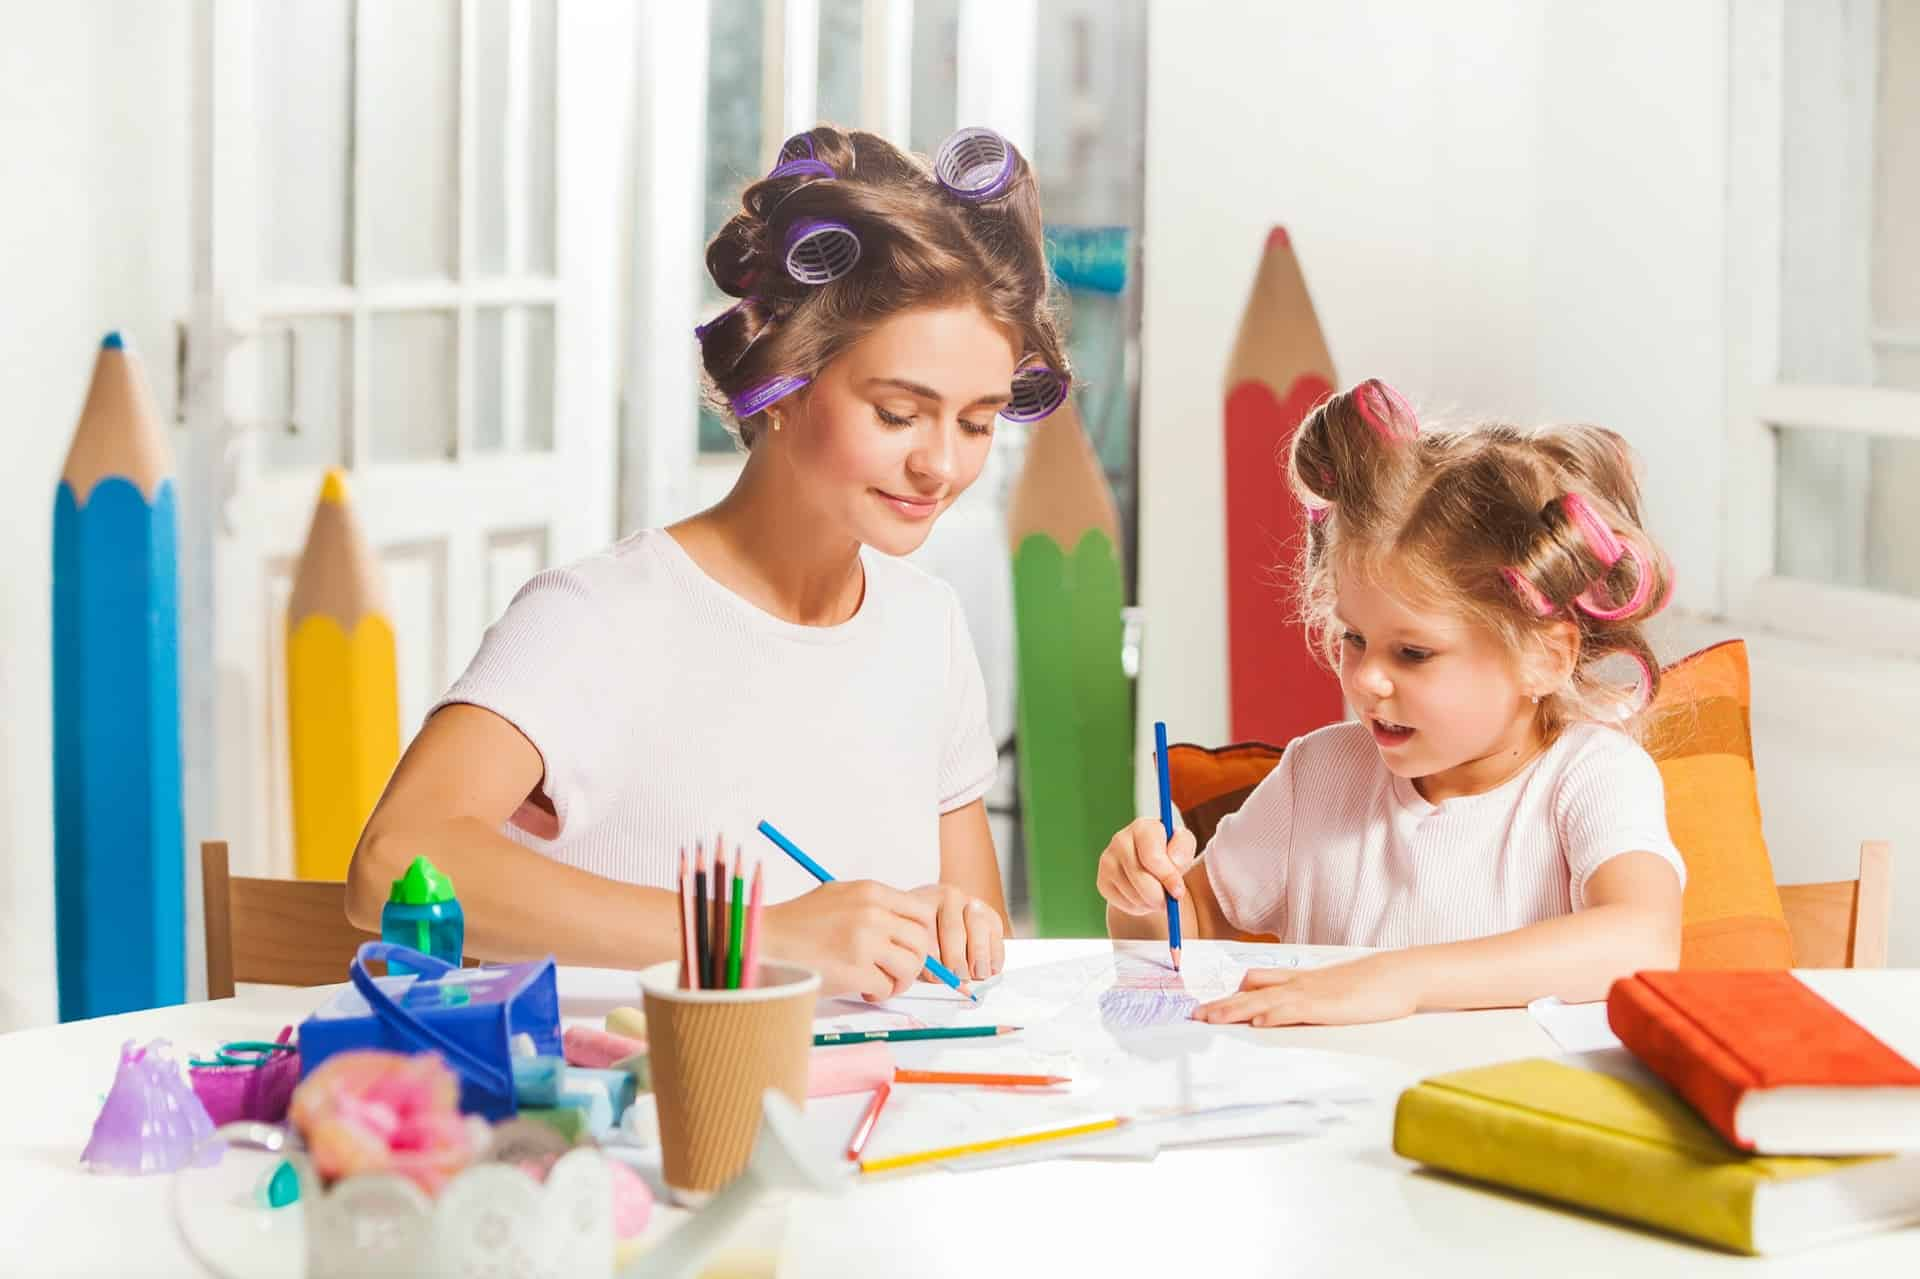 the young mother and her little daughter drawing P8QENEX - 5 Things You Can Do At Home With Your Kids